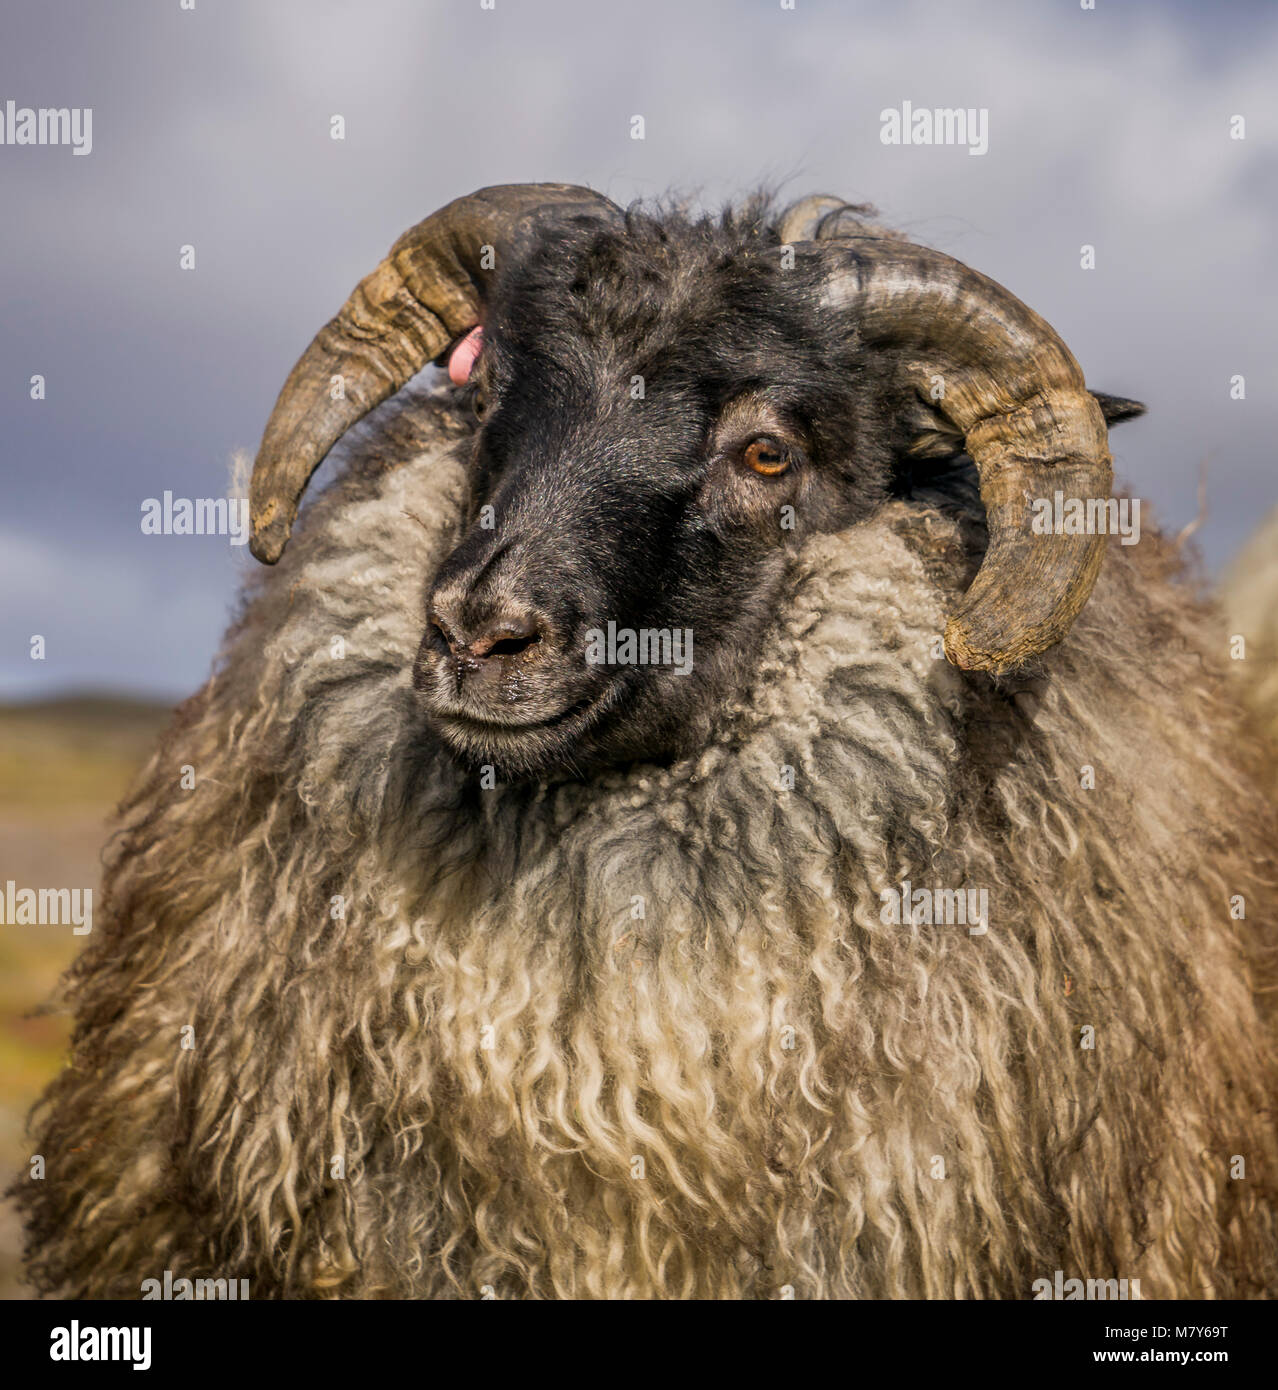 Icelandic Black Sheep, Autumn round-up, Iceland - Stock Image